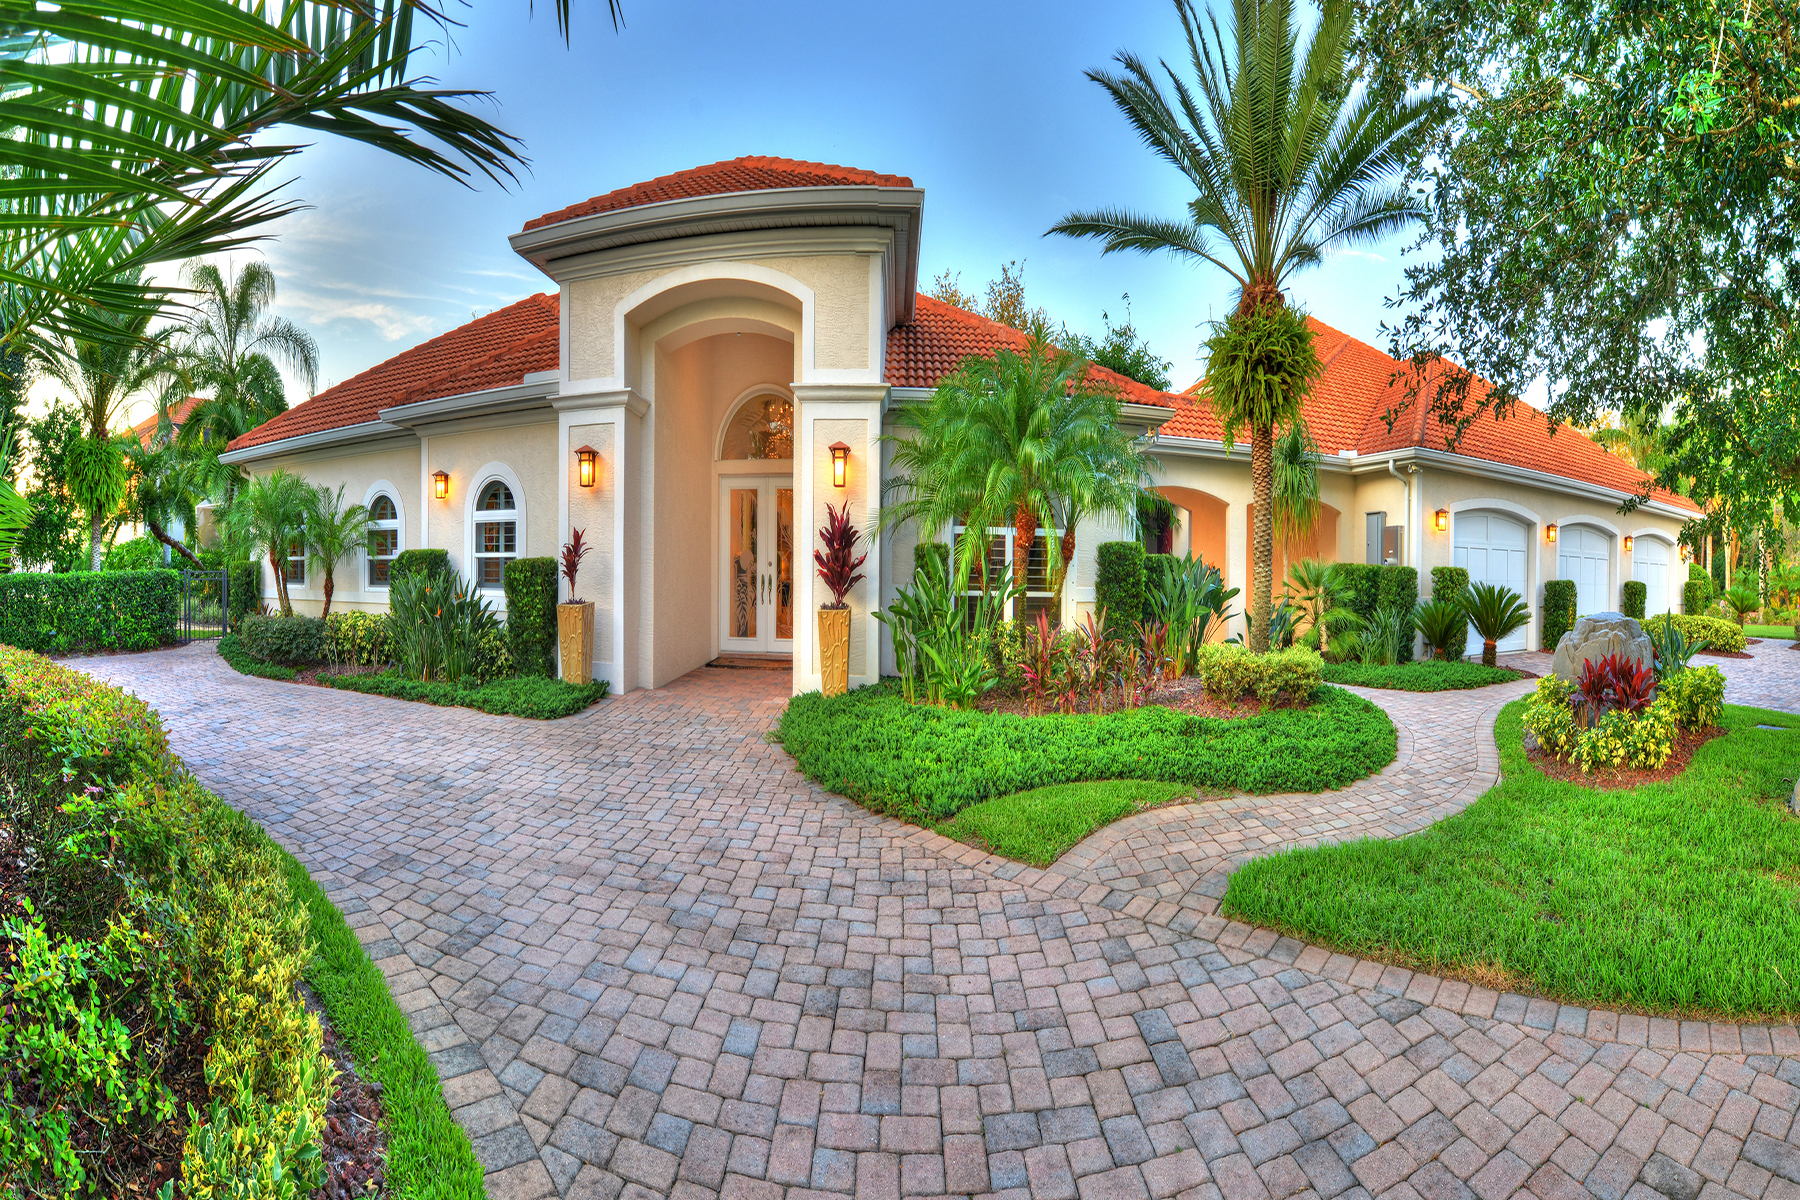 Single Family Home for Sale at SPRUCE CREEK AND THE BEACHES 1705 Spruce Creek Way Port Orange, Florida, 32128 United States